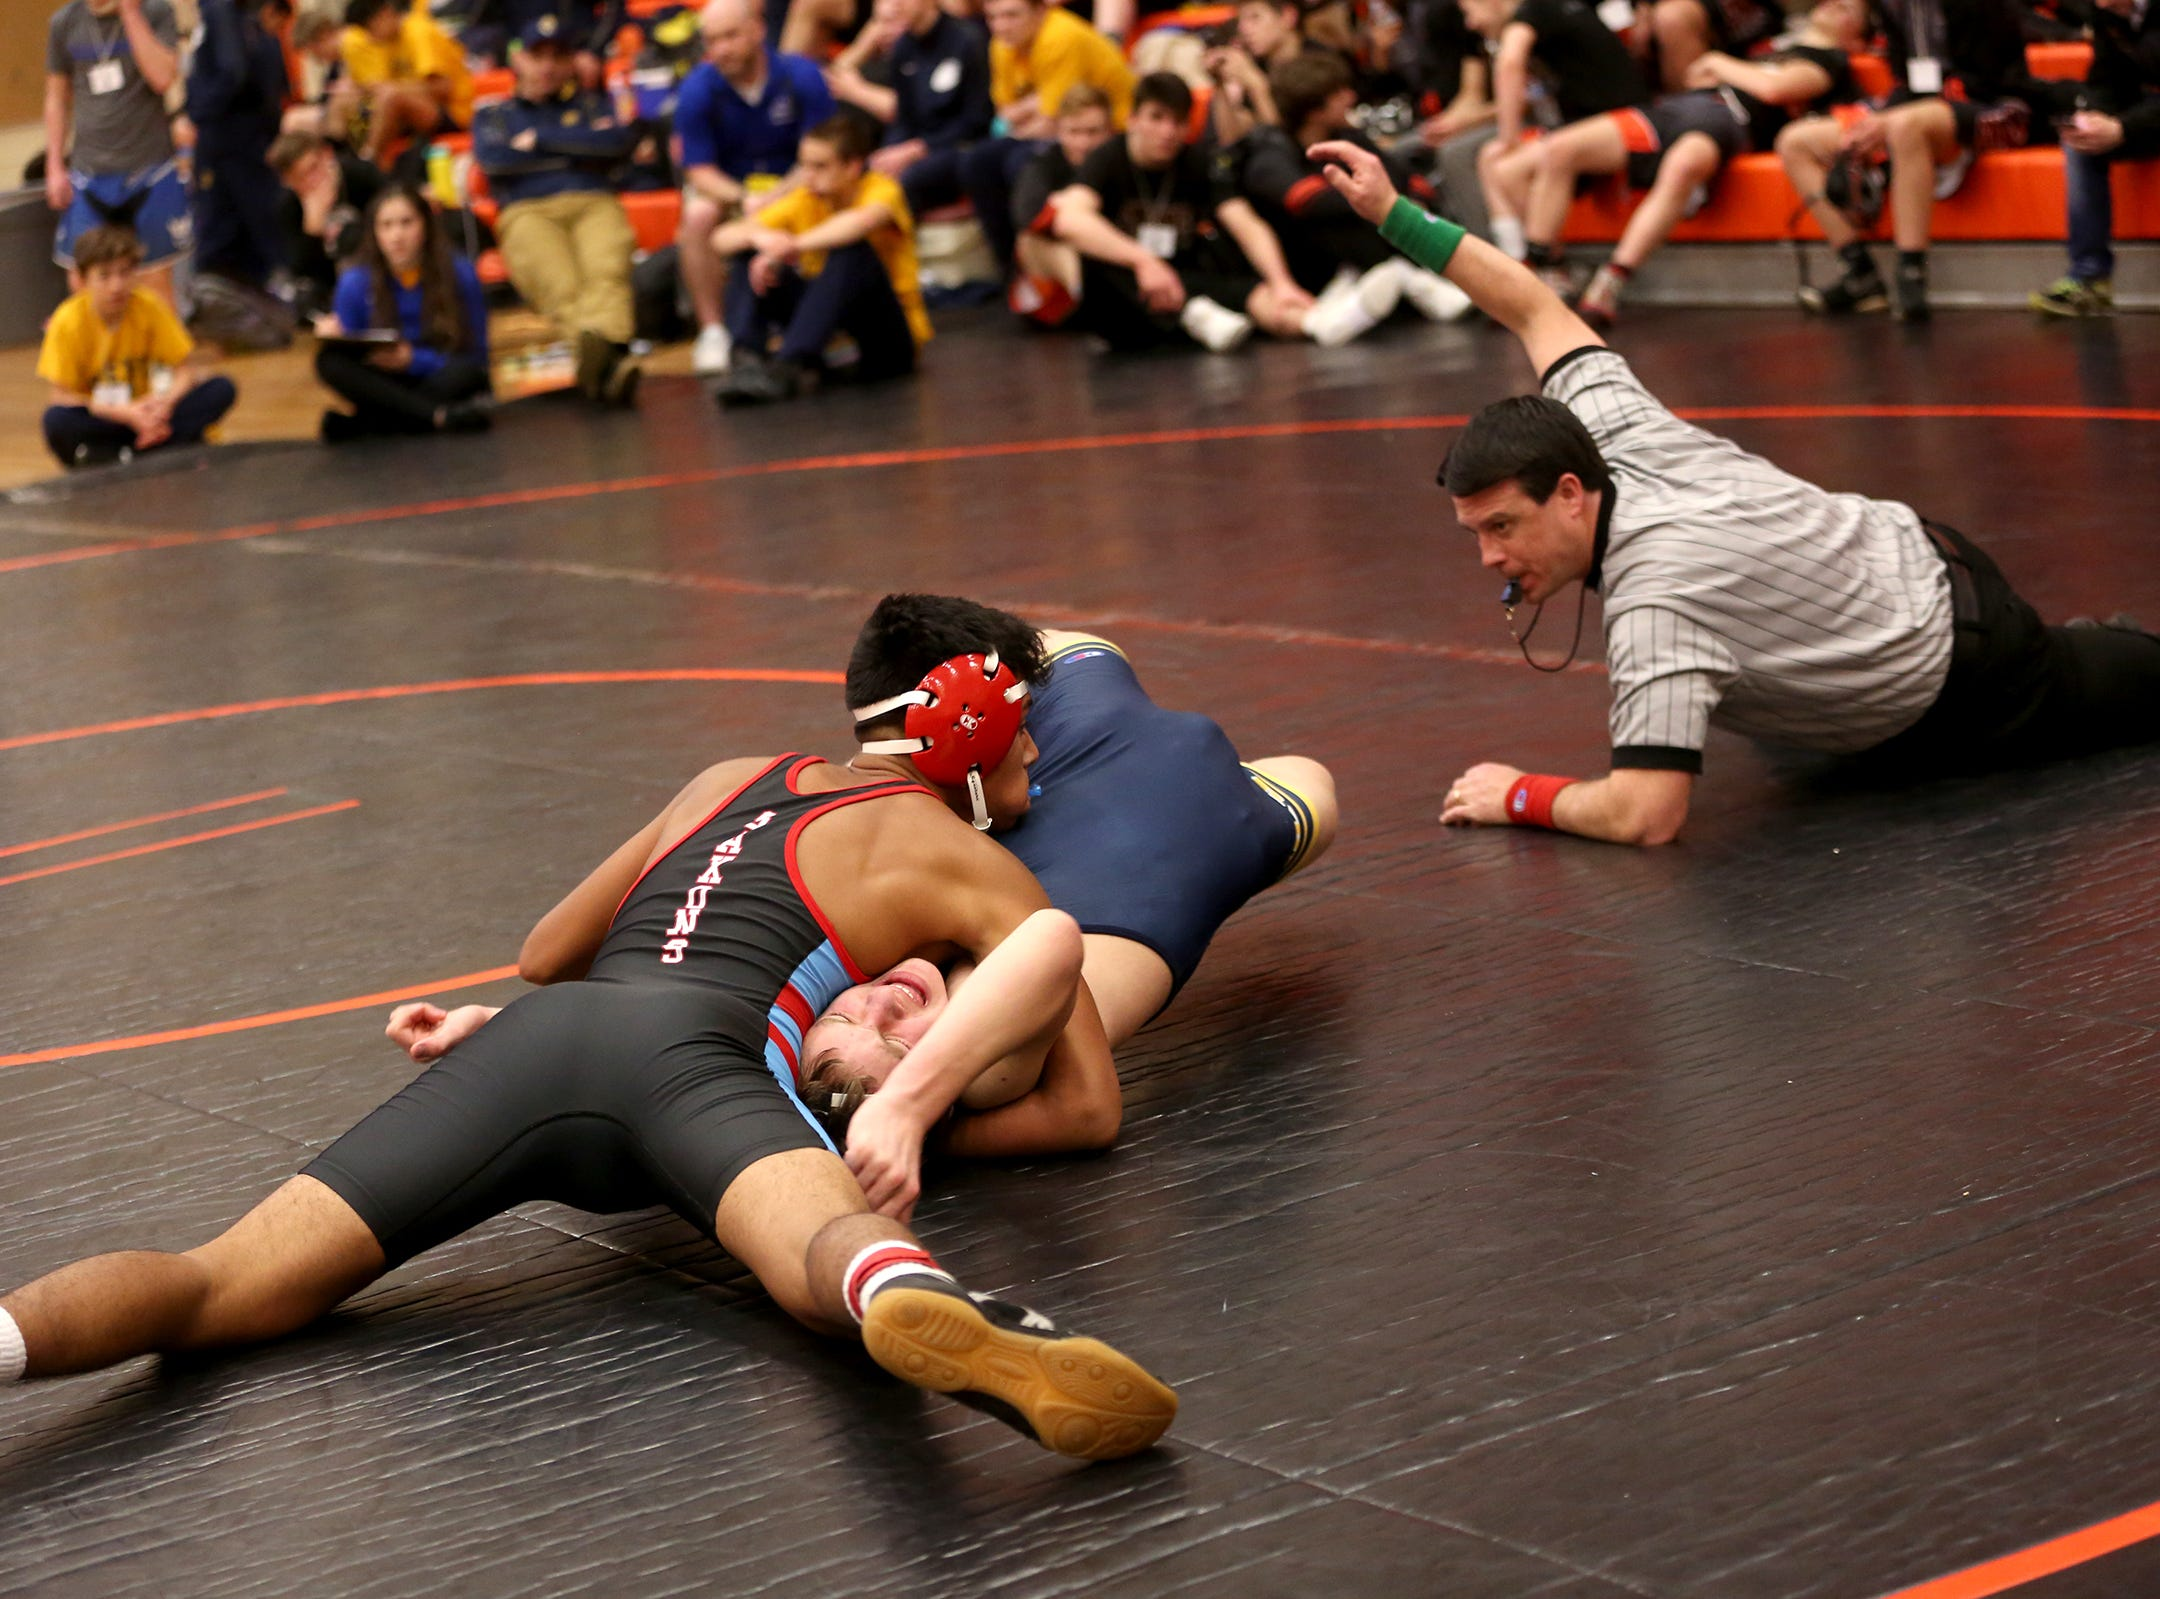 South Salem's Marco Garcia holds down Bend's Charles Powell as they compete in the 145 pound weight class during the Mountain Valley Conference district wrestling tournament at Sprague High School in Salem on Friday, Feb. 15, 2019.